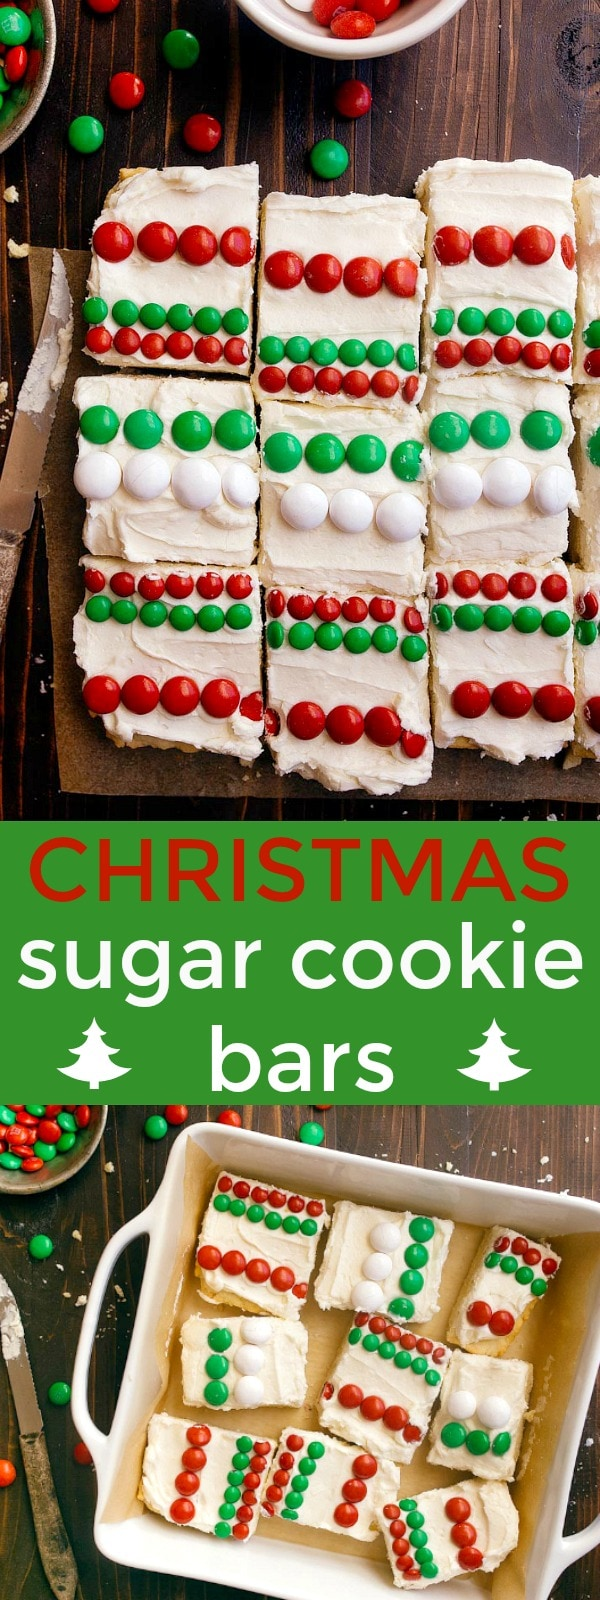 Christmas sugar cookie bars: easy cookies for Santa! M&Ms sugar cookie bars for Santa.